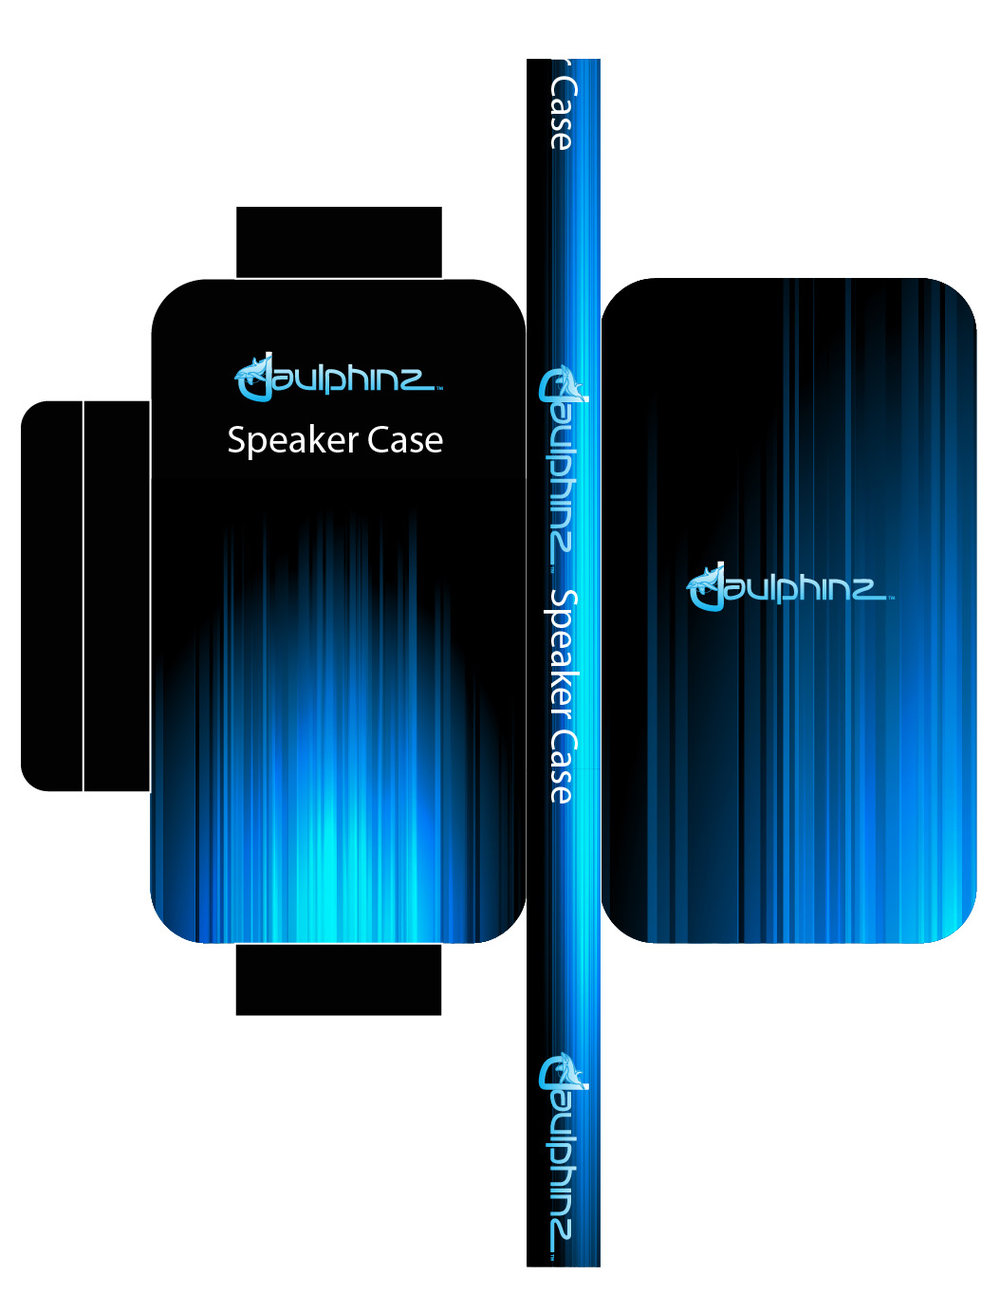 DAULPHINZ SPEAKERS-CASE-03.jpg